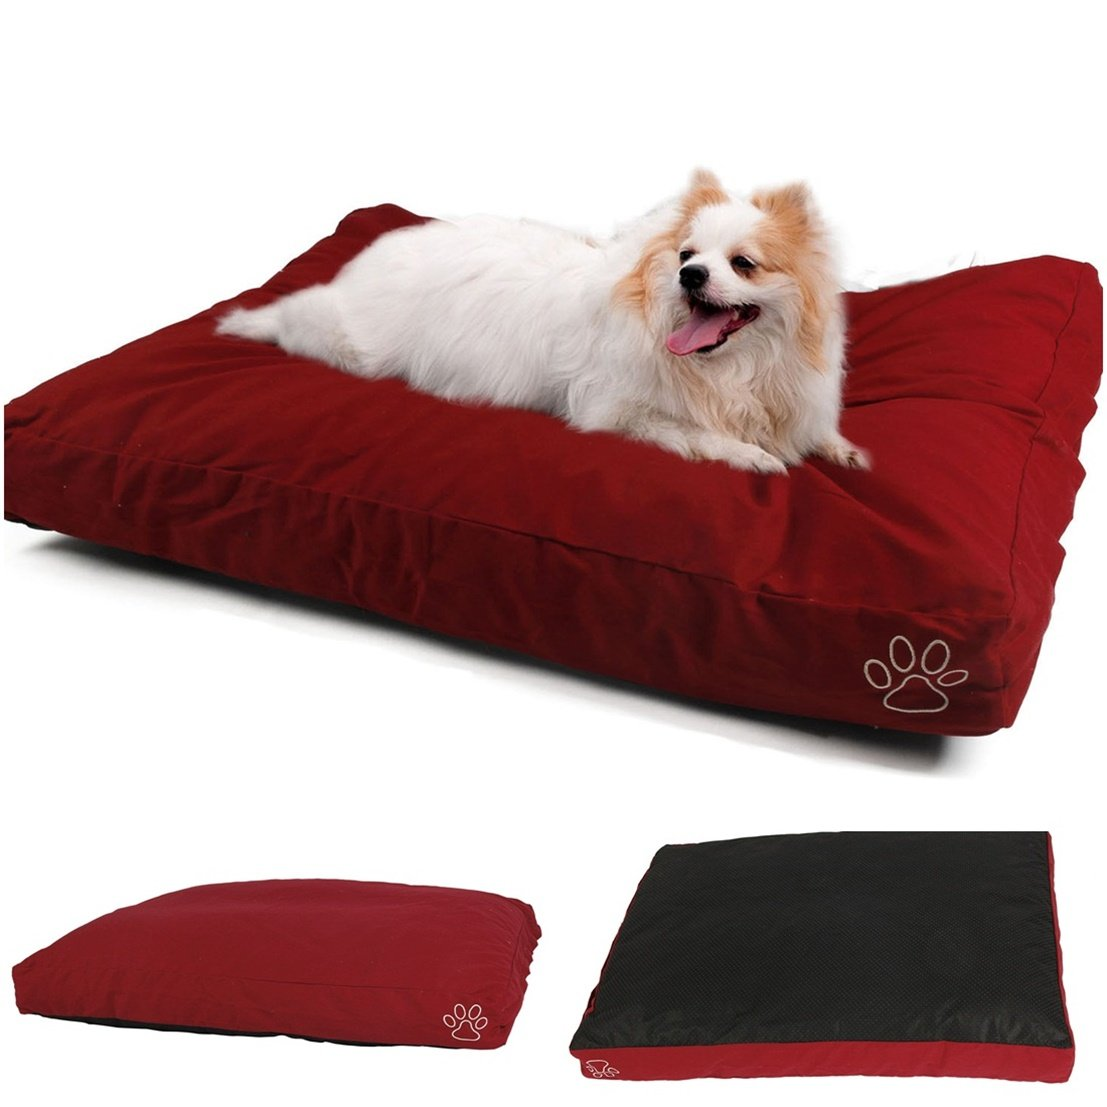 1Pcs Ornate Popular Pet Bed Cover Size L 36'' x 29'' Cat Pillow Replacement Large Mat Color Type Red Cotton